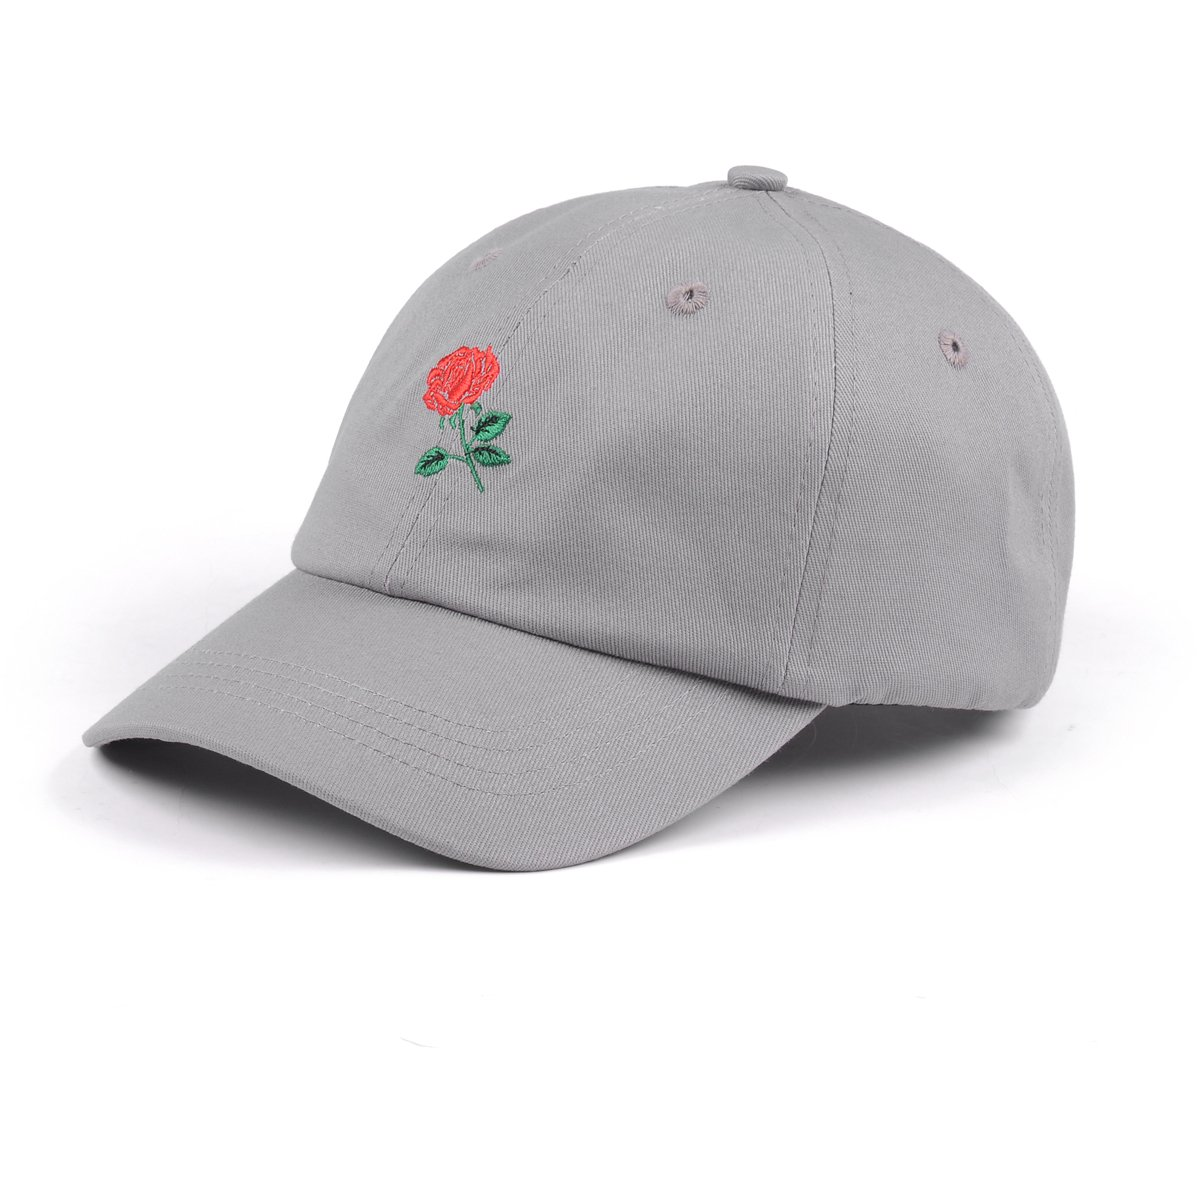 AUNG CROWN Rose Embroidered Dad Hat Women Men Cute Adjustable Cotton Floral Baseball Cap (Grey)